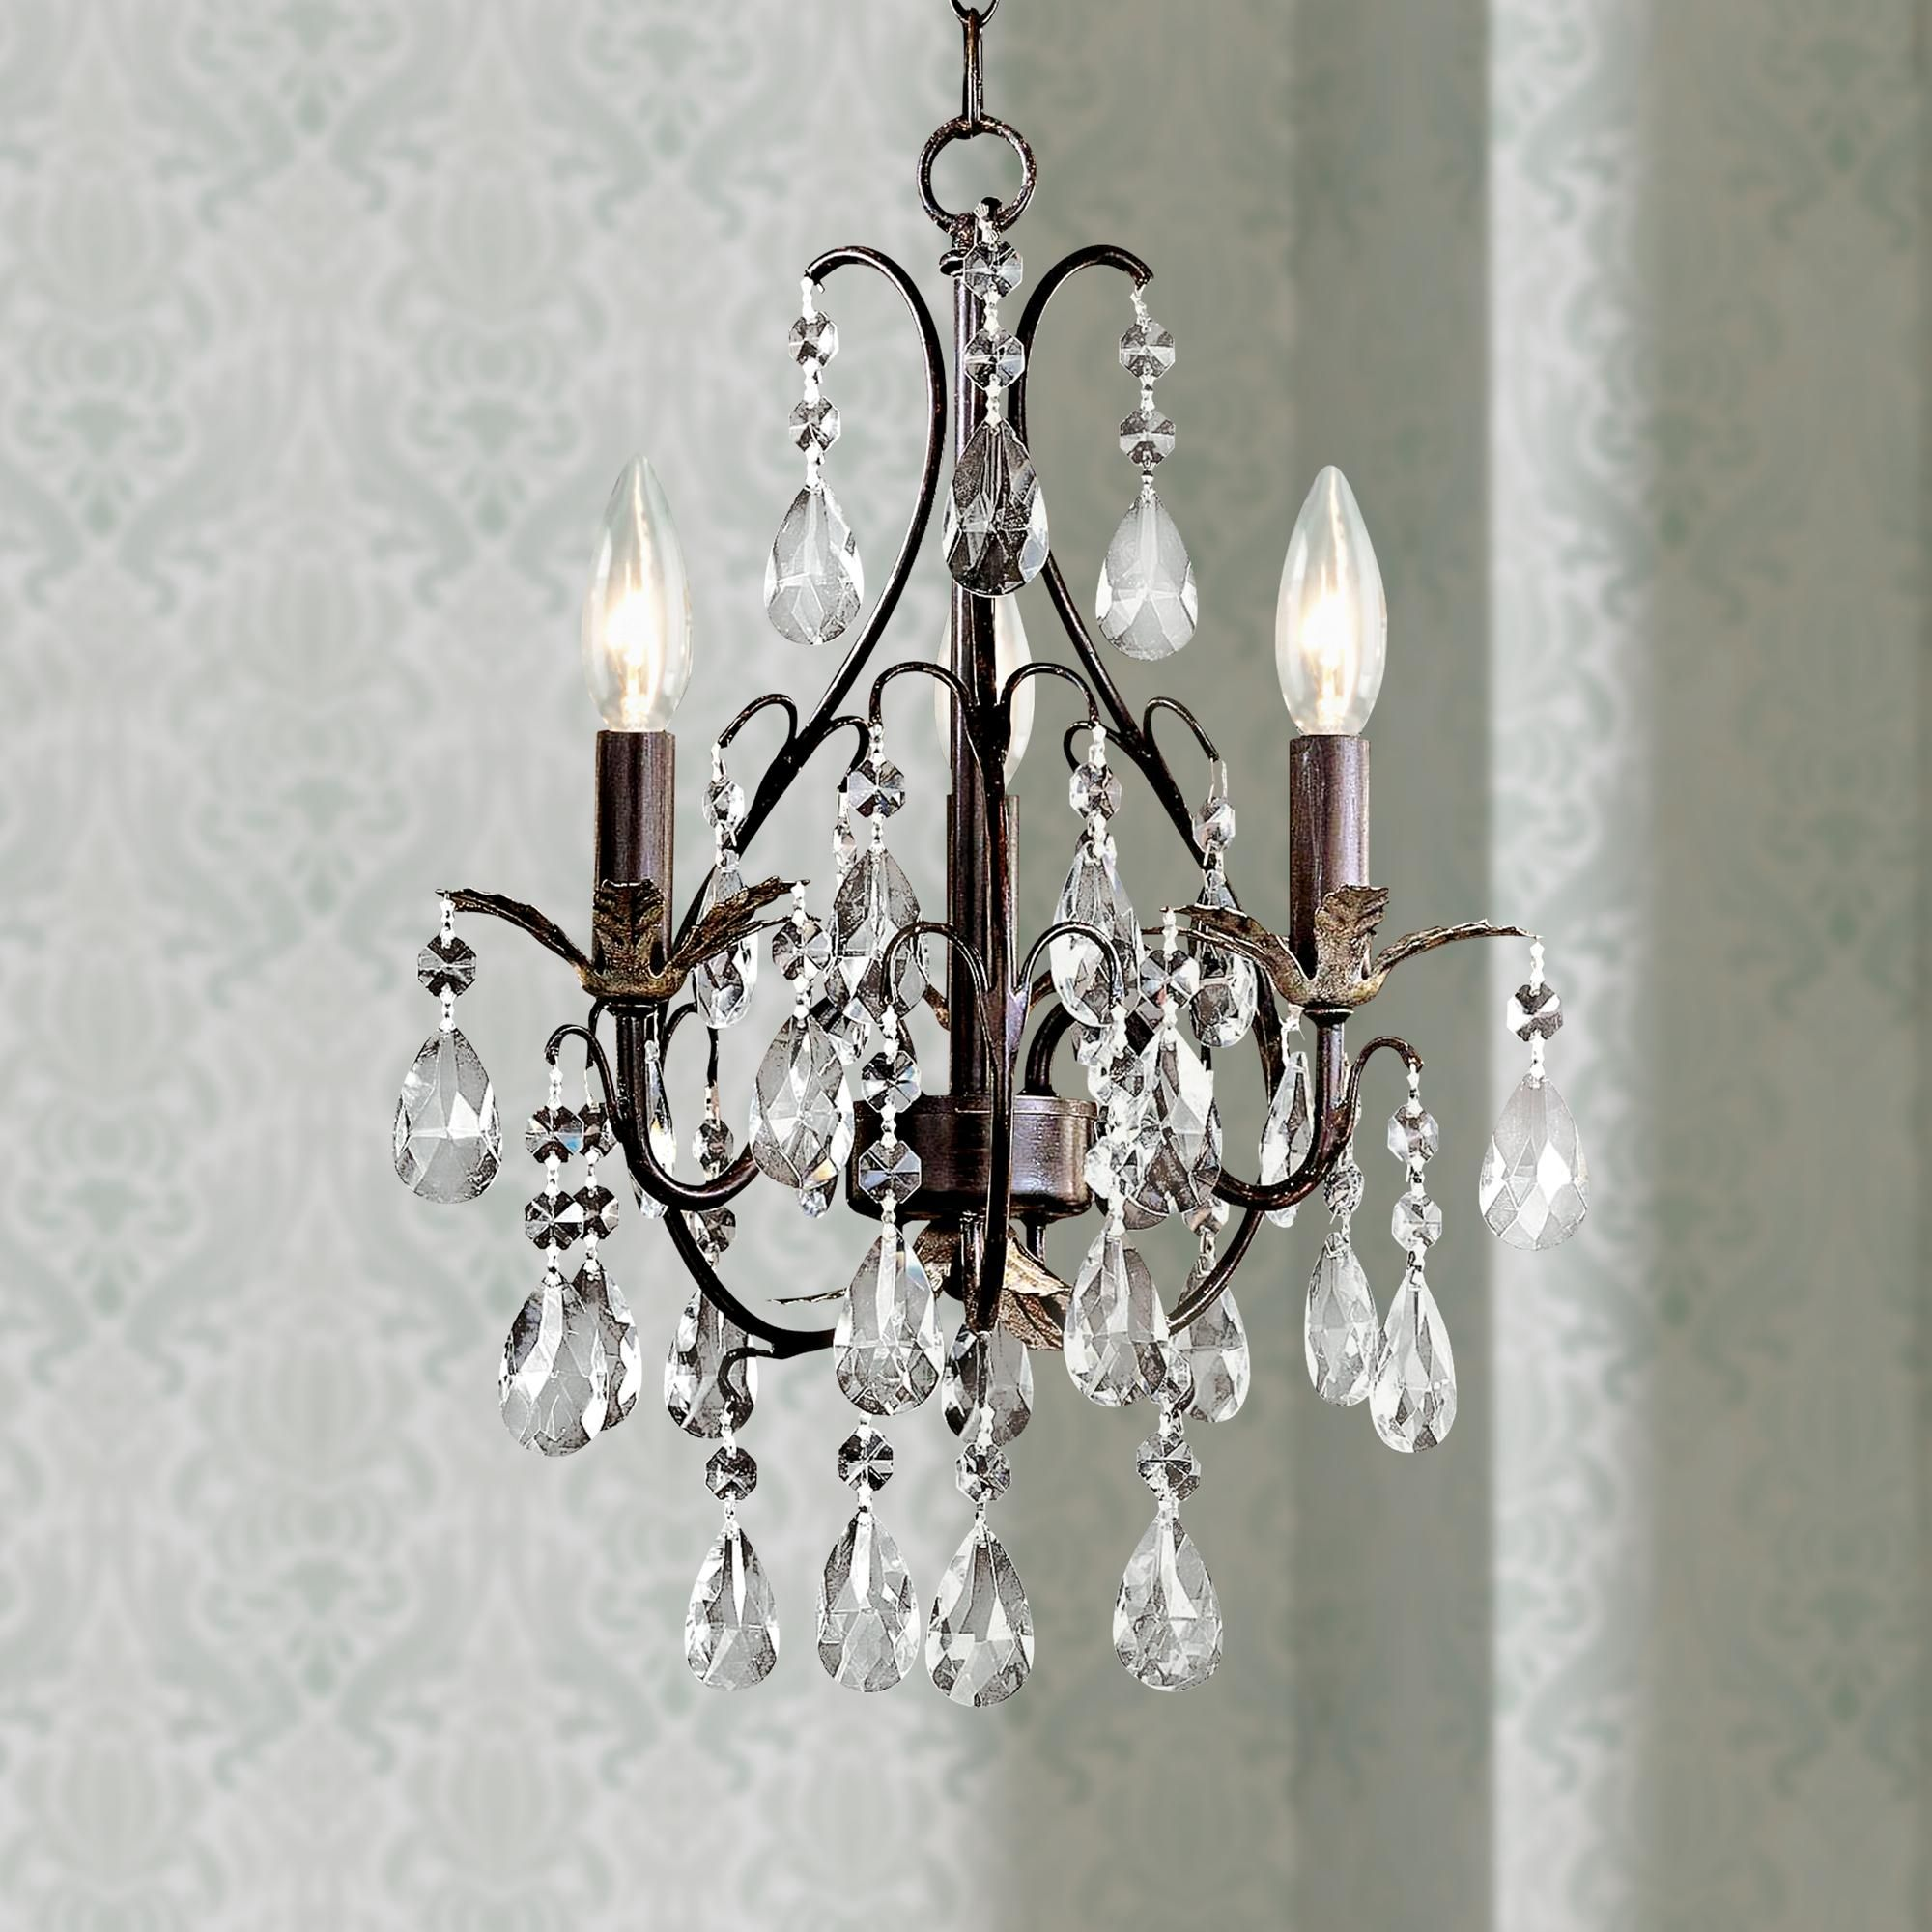 Castlewood Walnut Silver Finish 3 Light Mini Chandelier Style